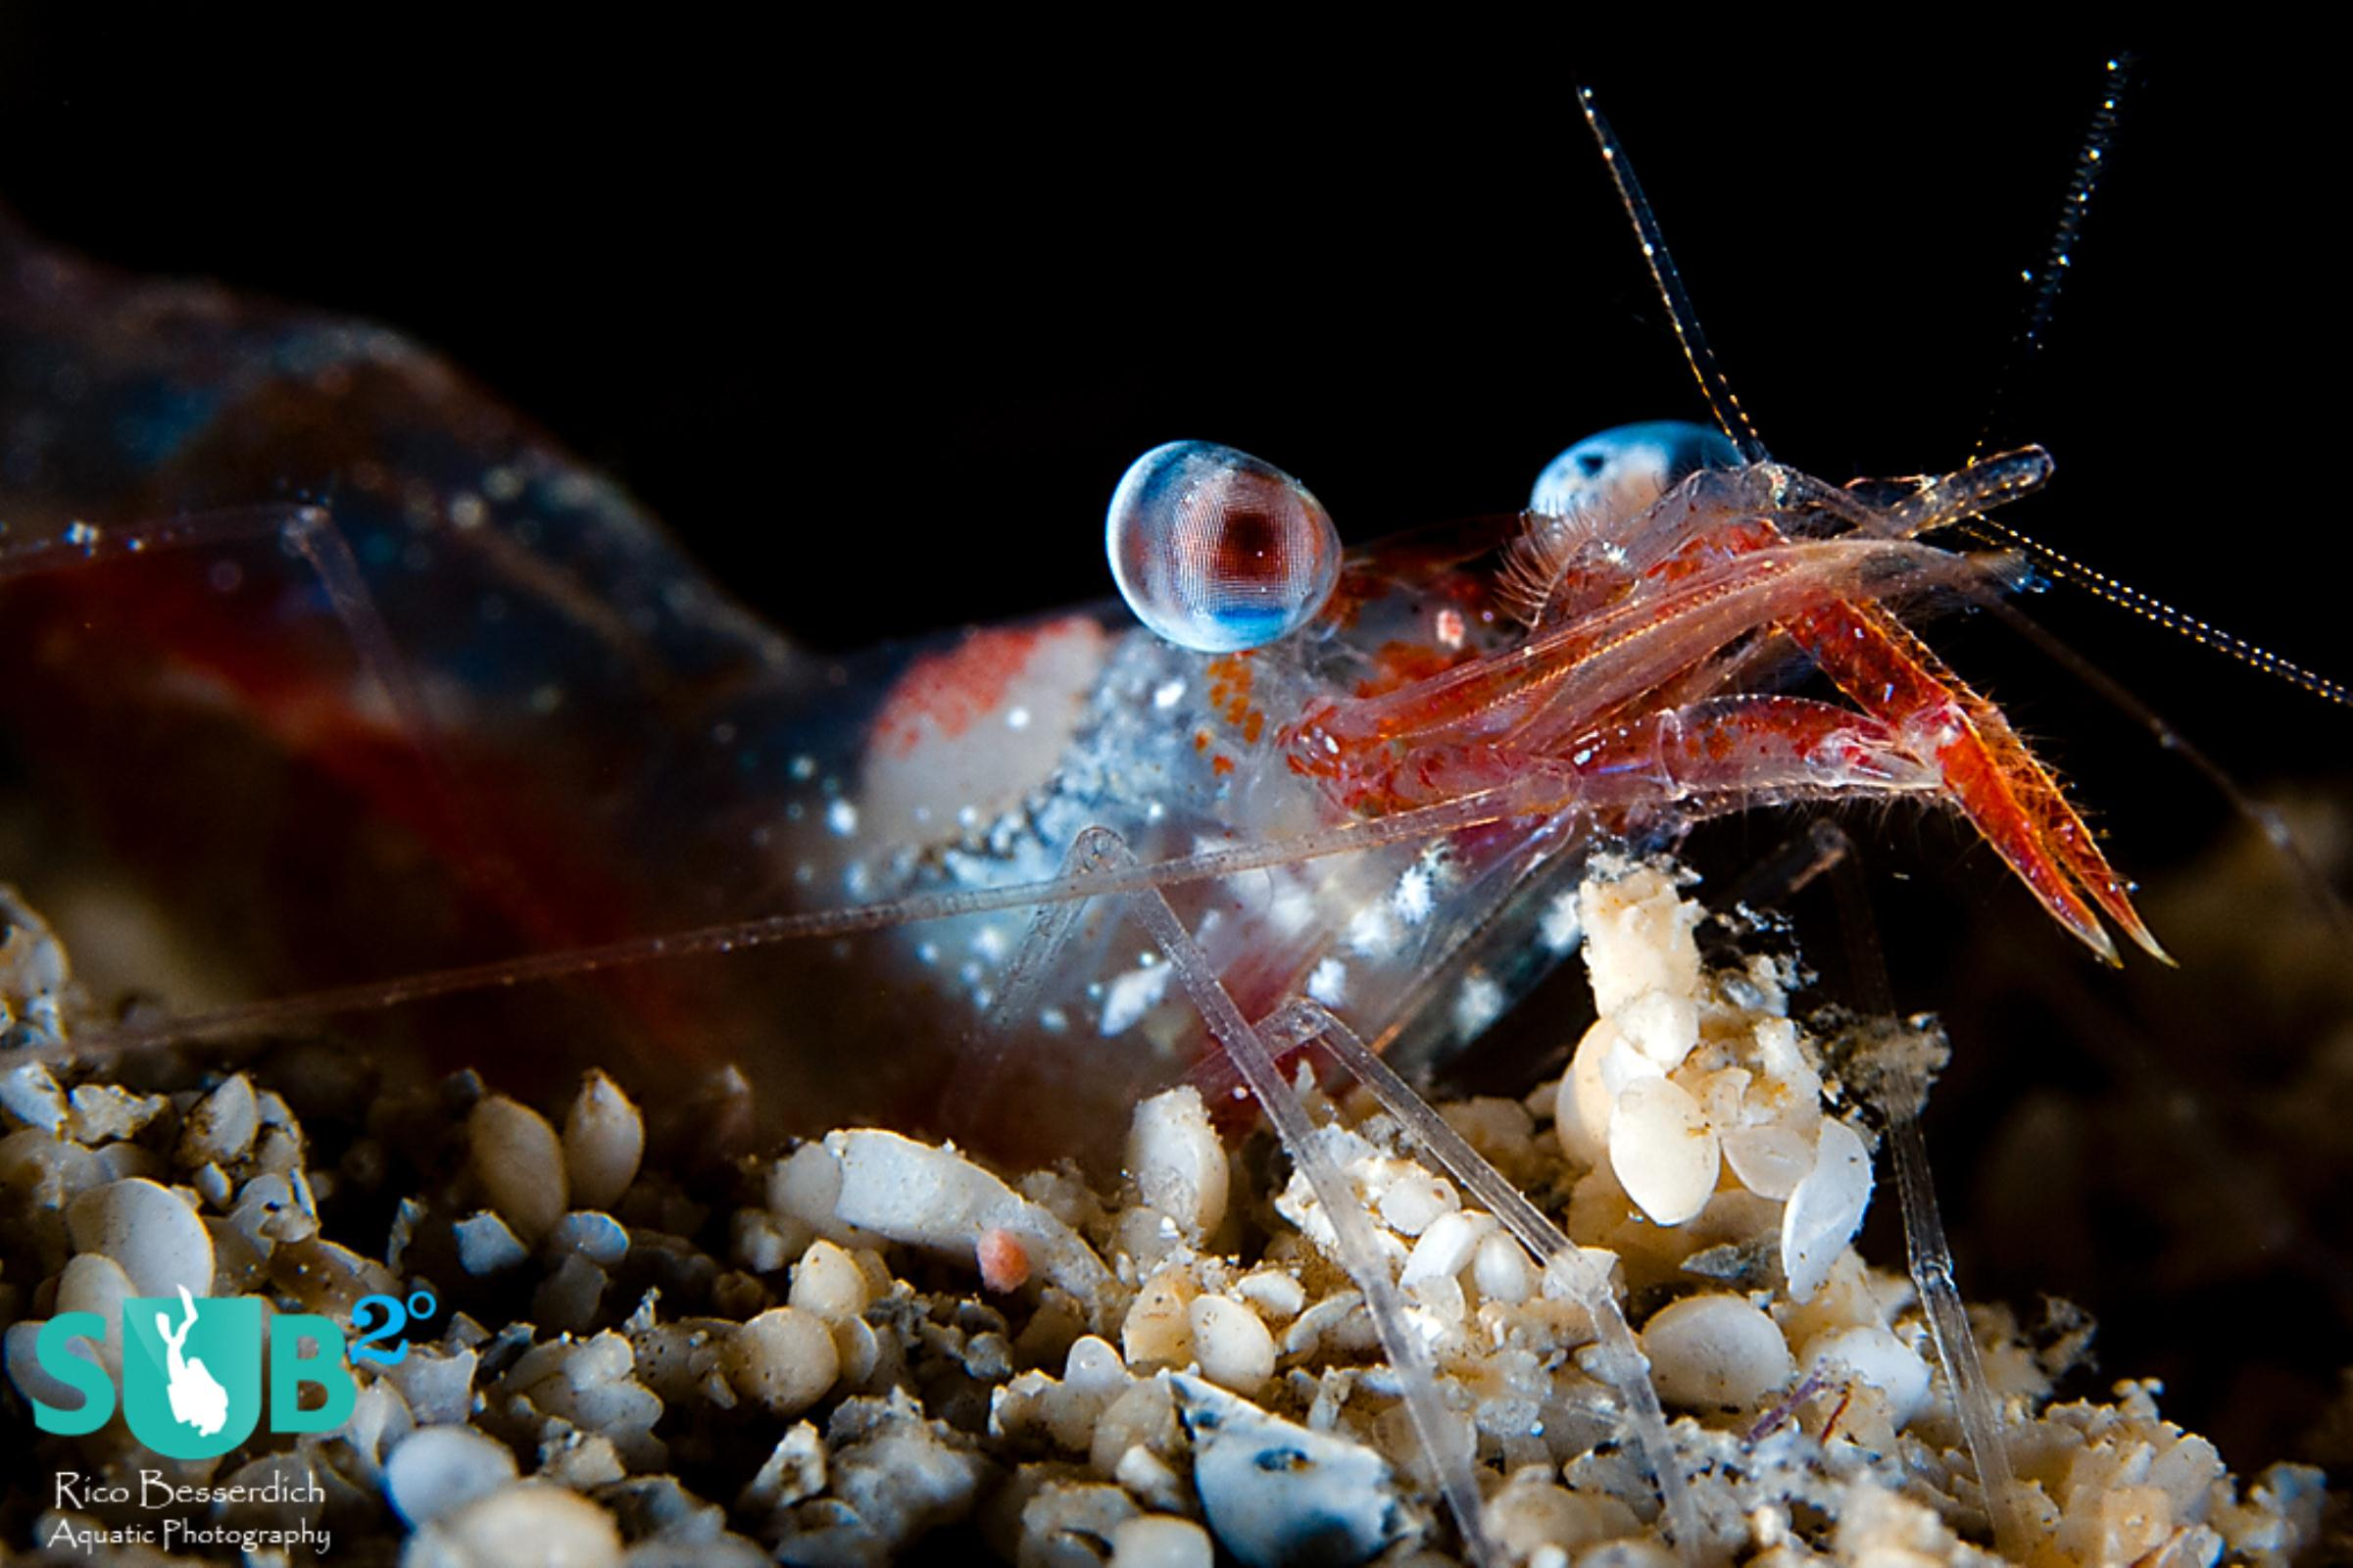 Shrimps are sometimes nervous small buddies that need quite the patience to achieve a proper photograph.